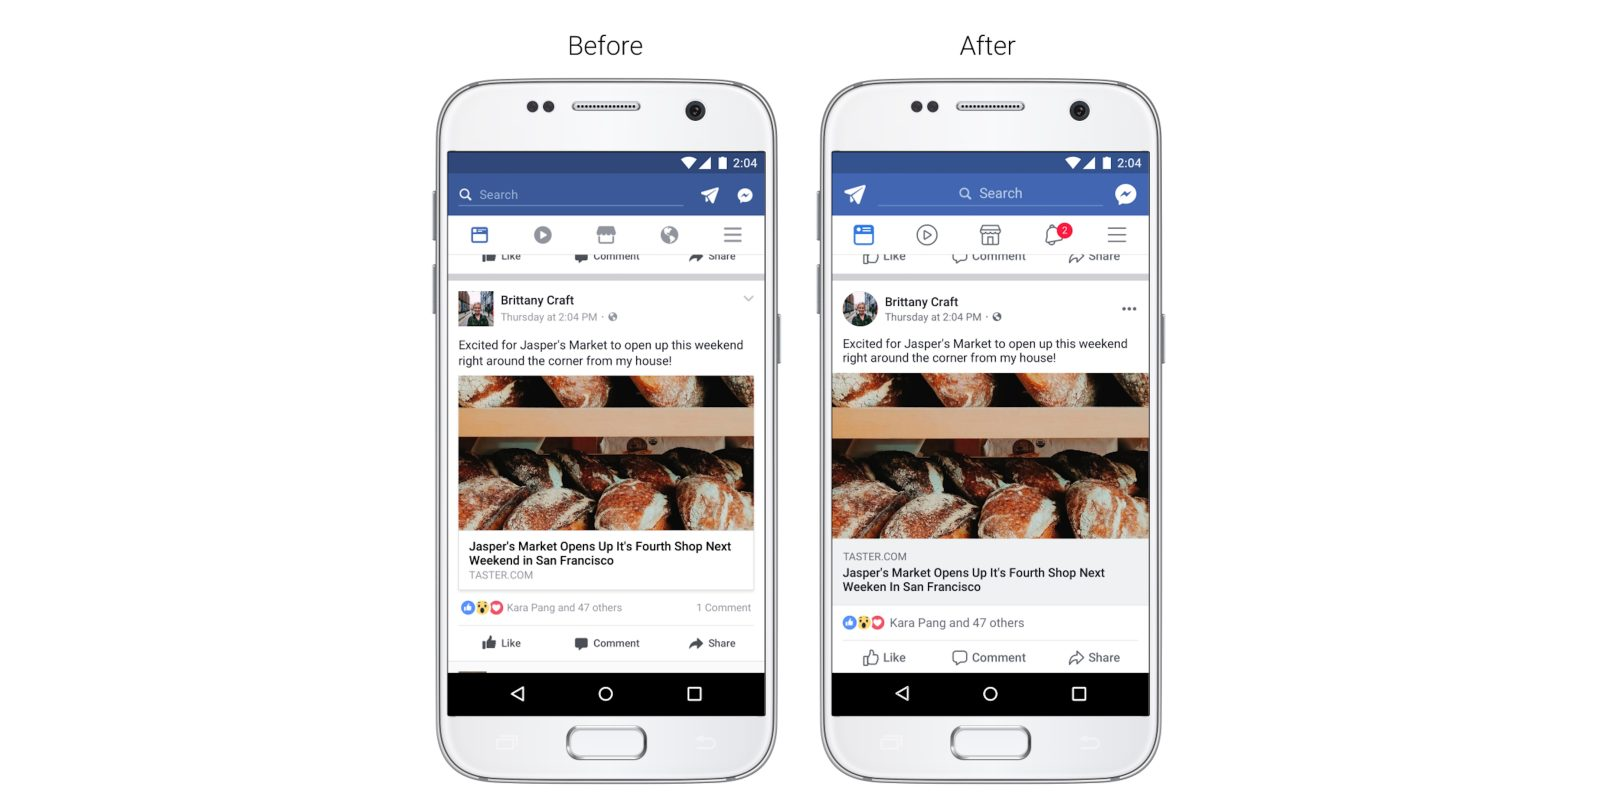 Facebook announces News Feed interface changes, new features for